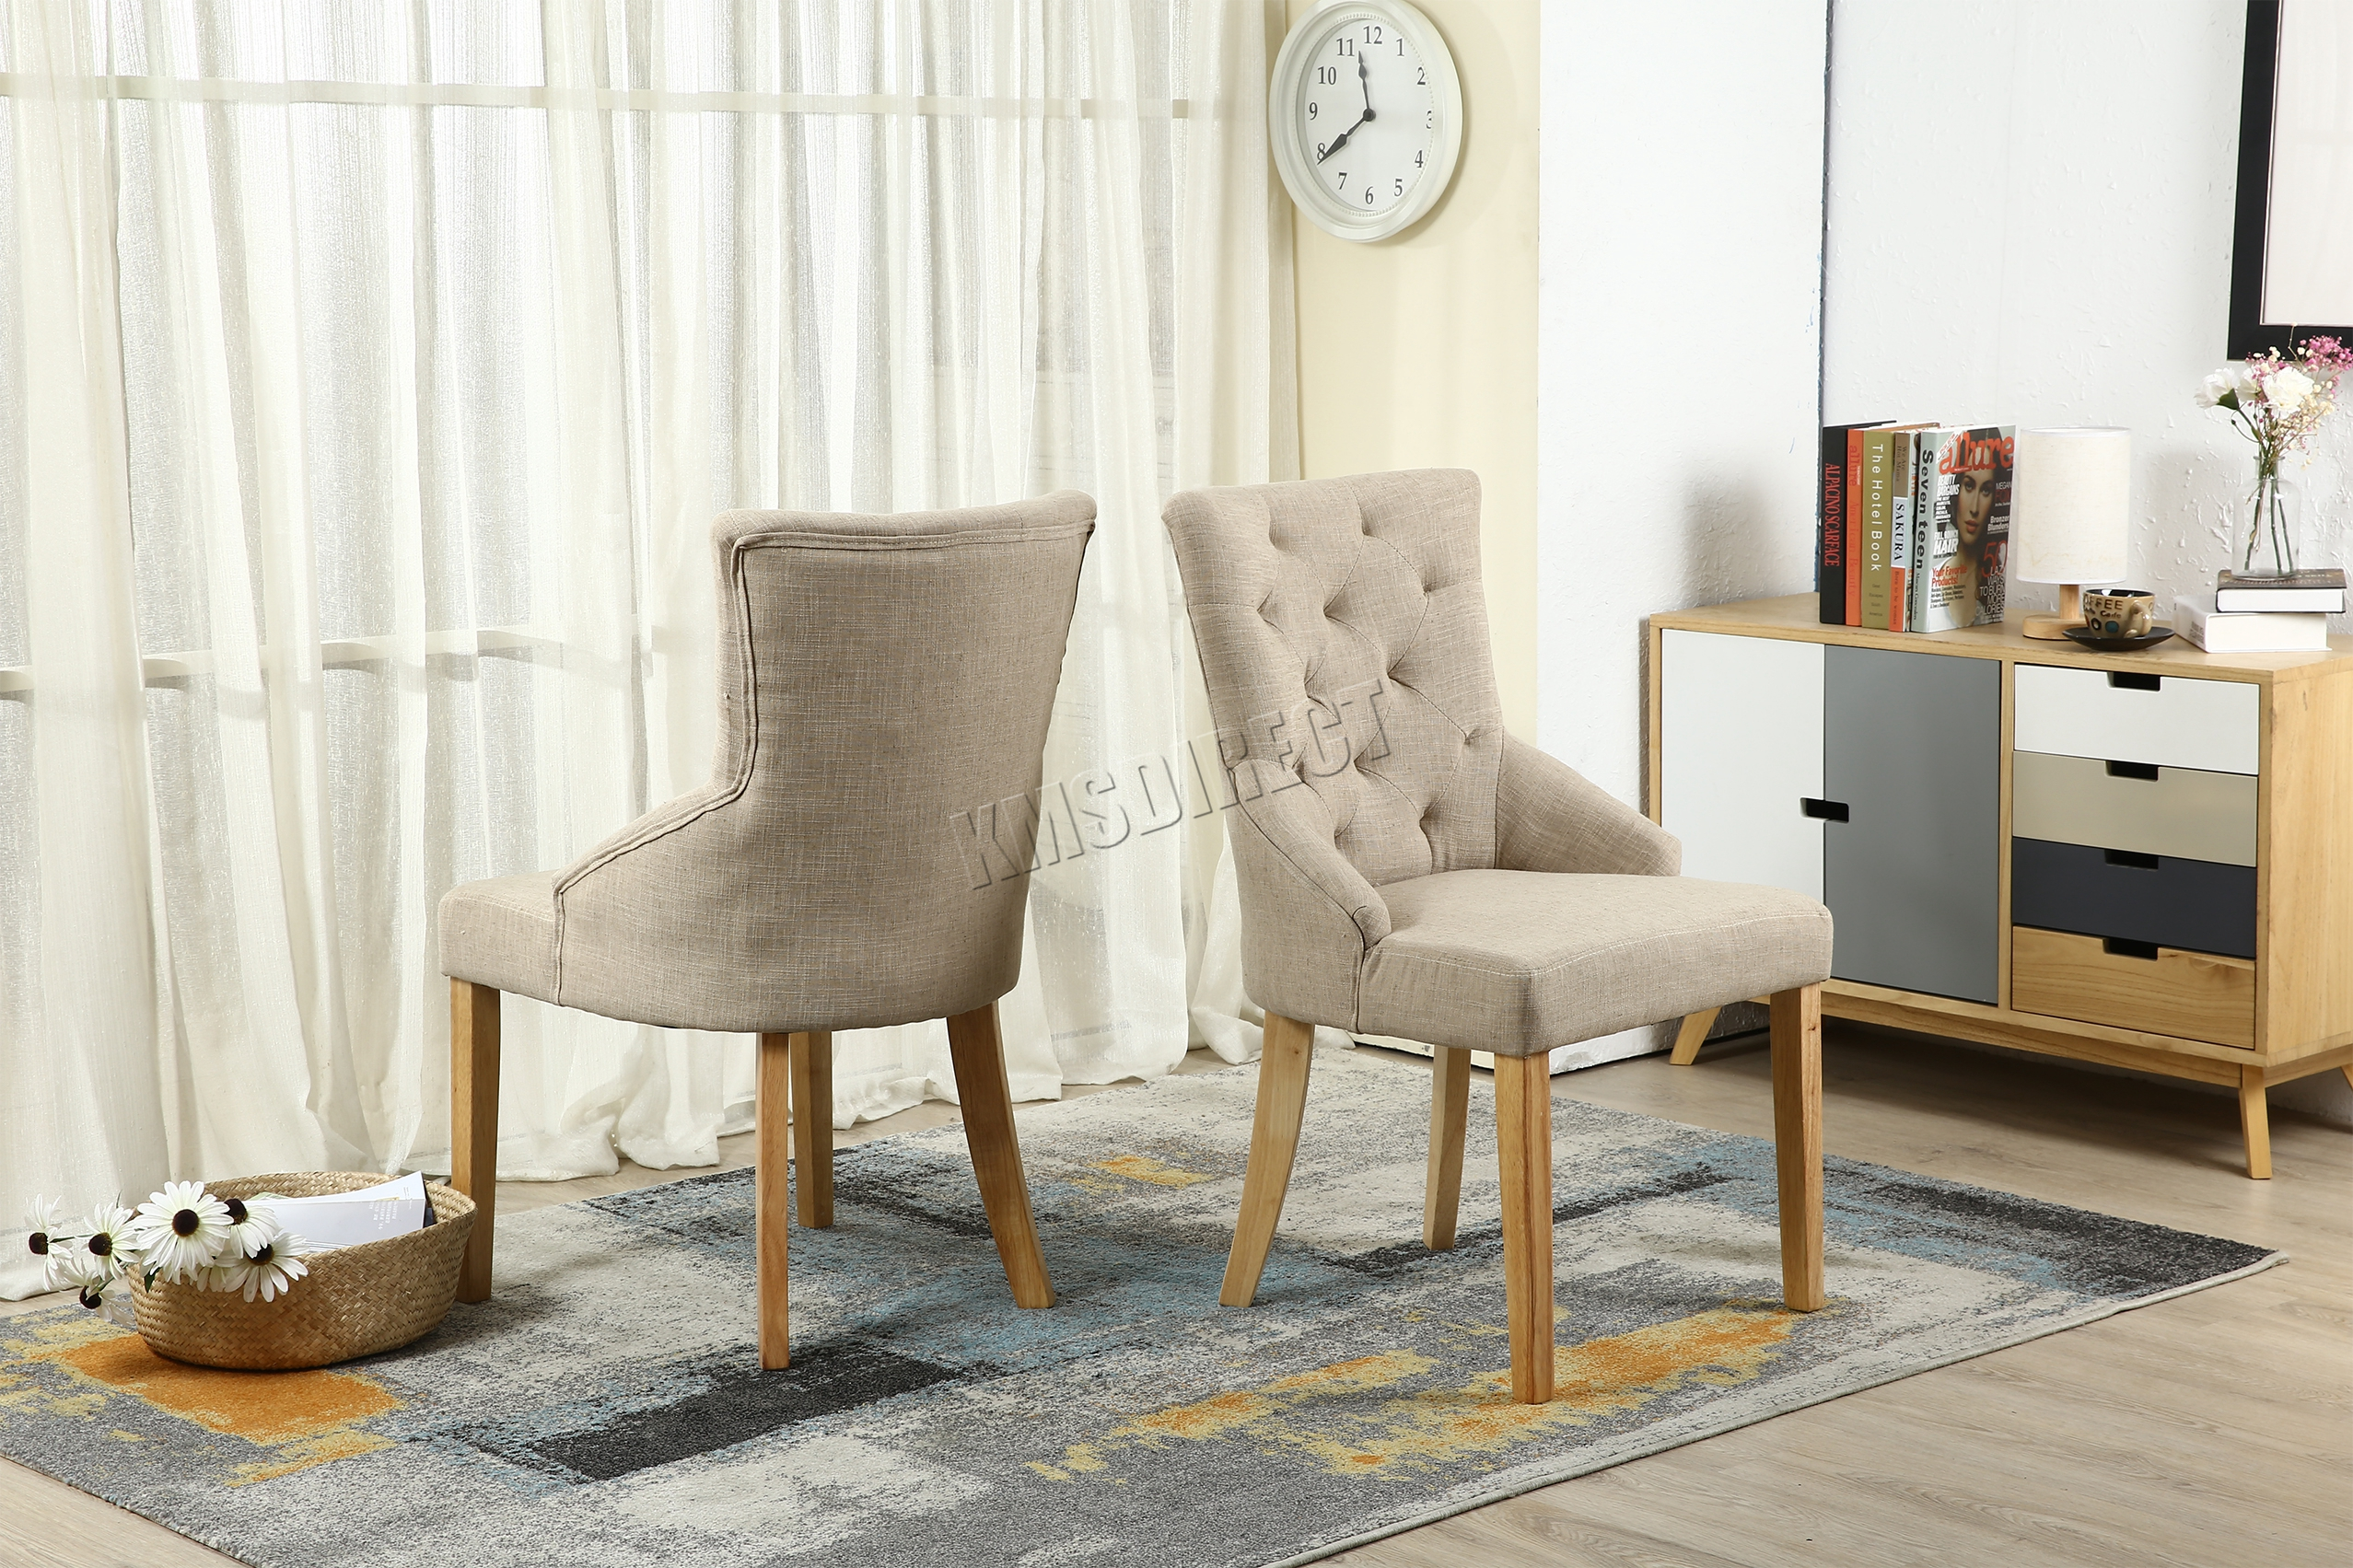 tufted back dining chair. Image Is Loading WestWood-New-Cream-Linen-Fabric-Dining-Chairs-Scoop- Tufted Back Dining Chair T